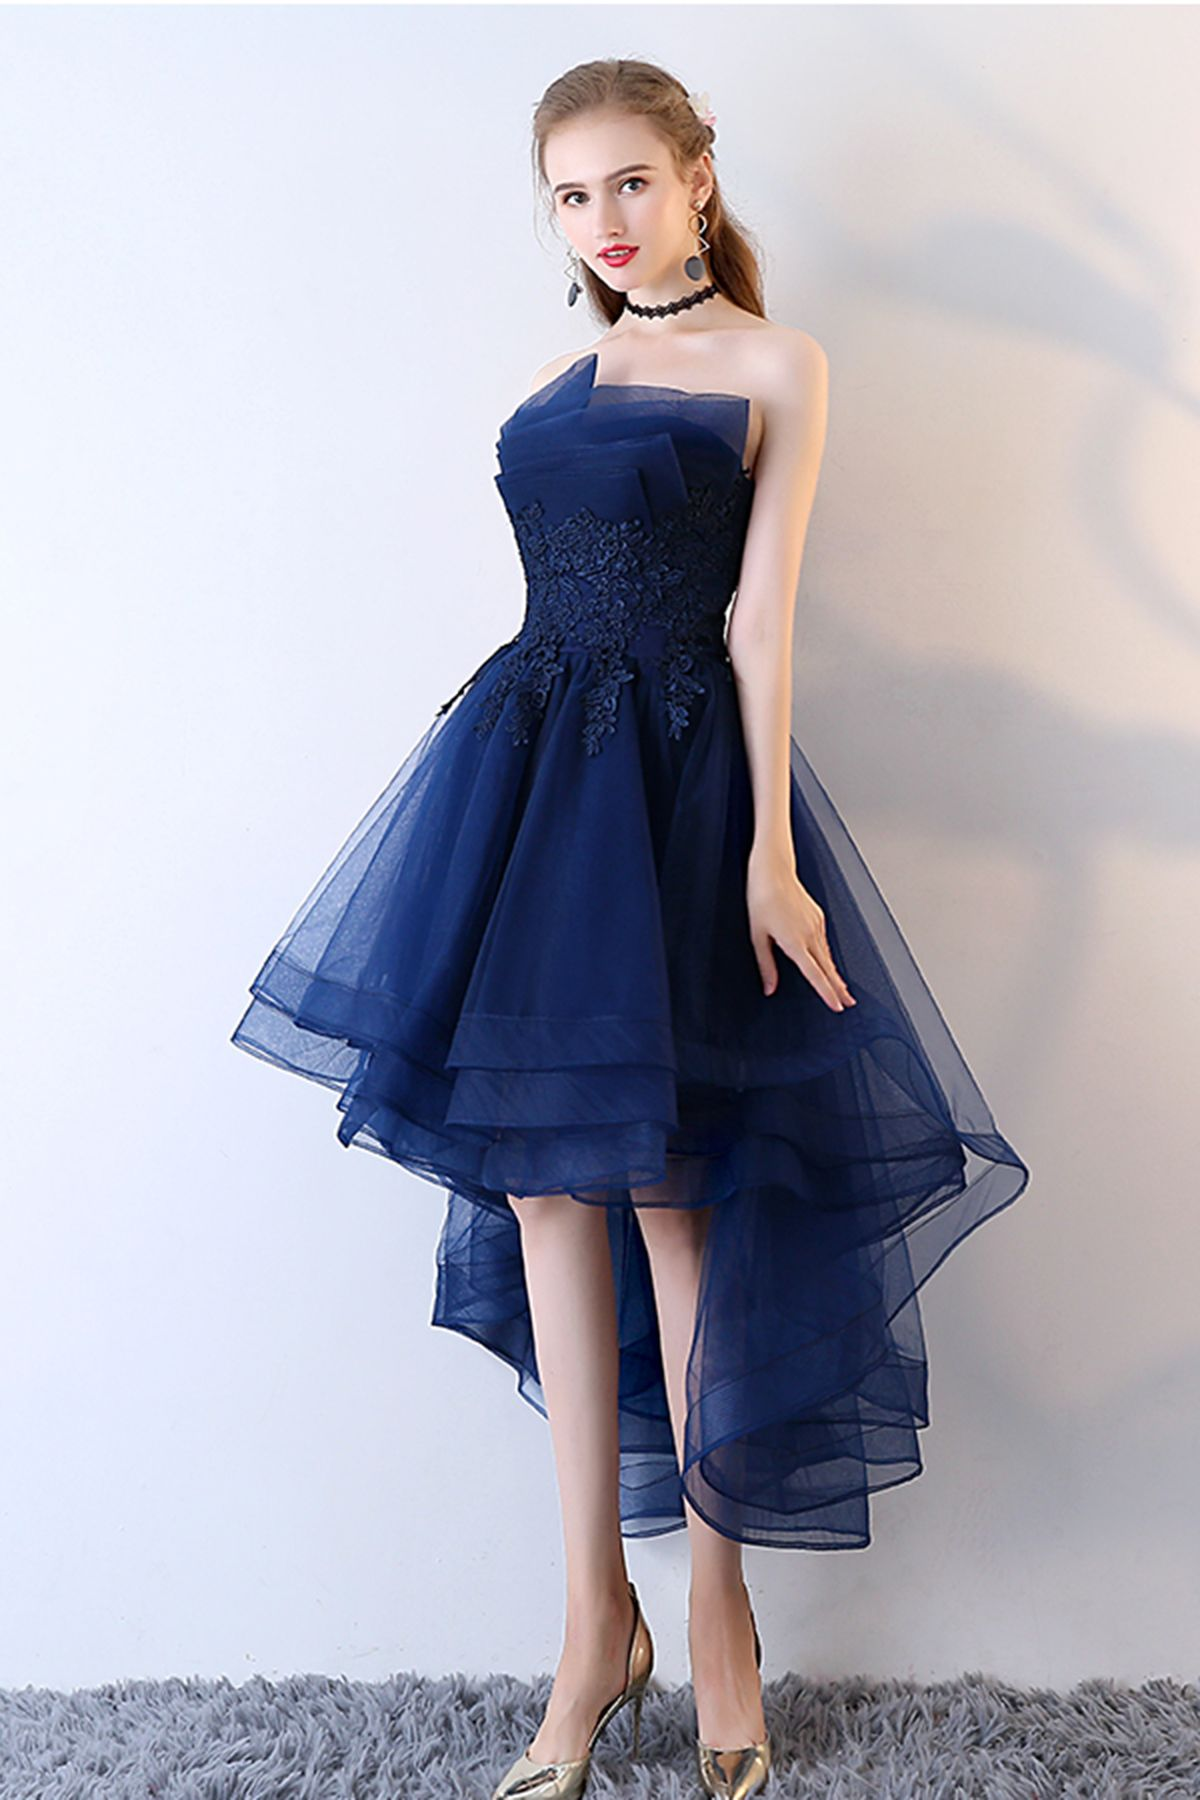 Cute navy blue tulle high low prom dress for teens #promdress